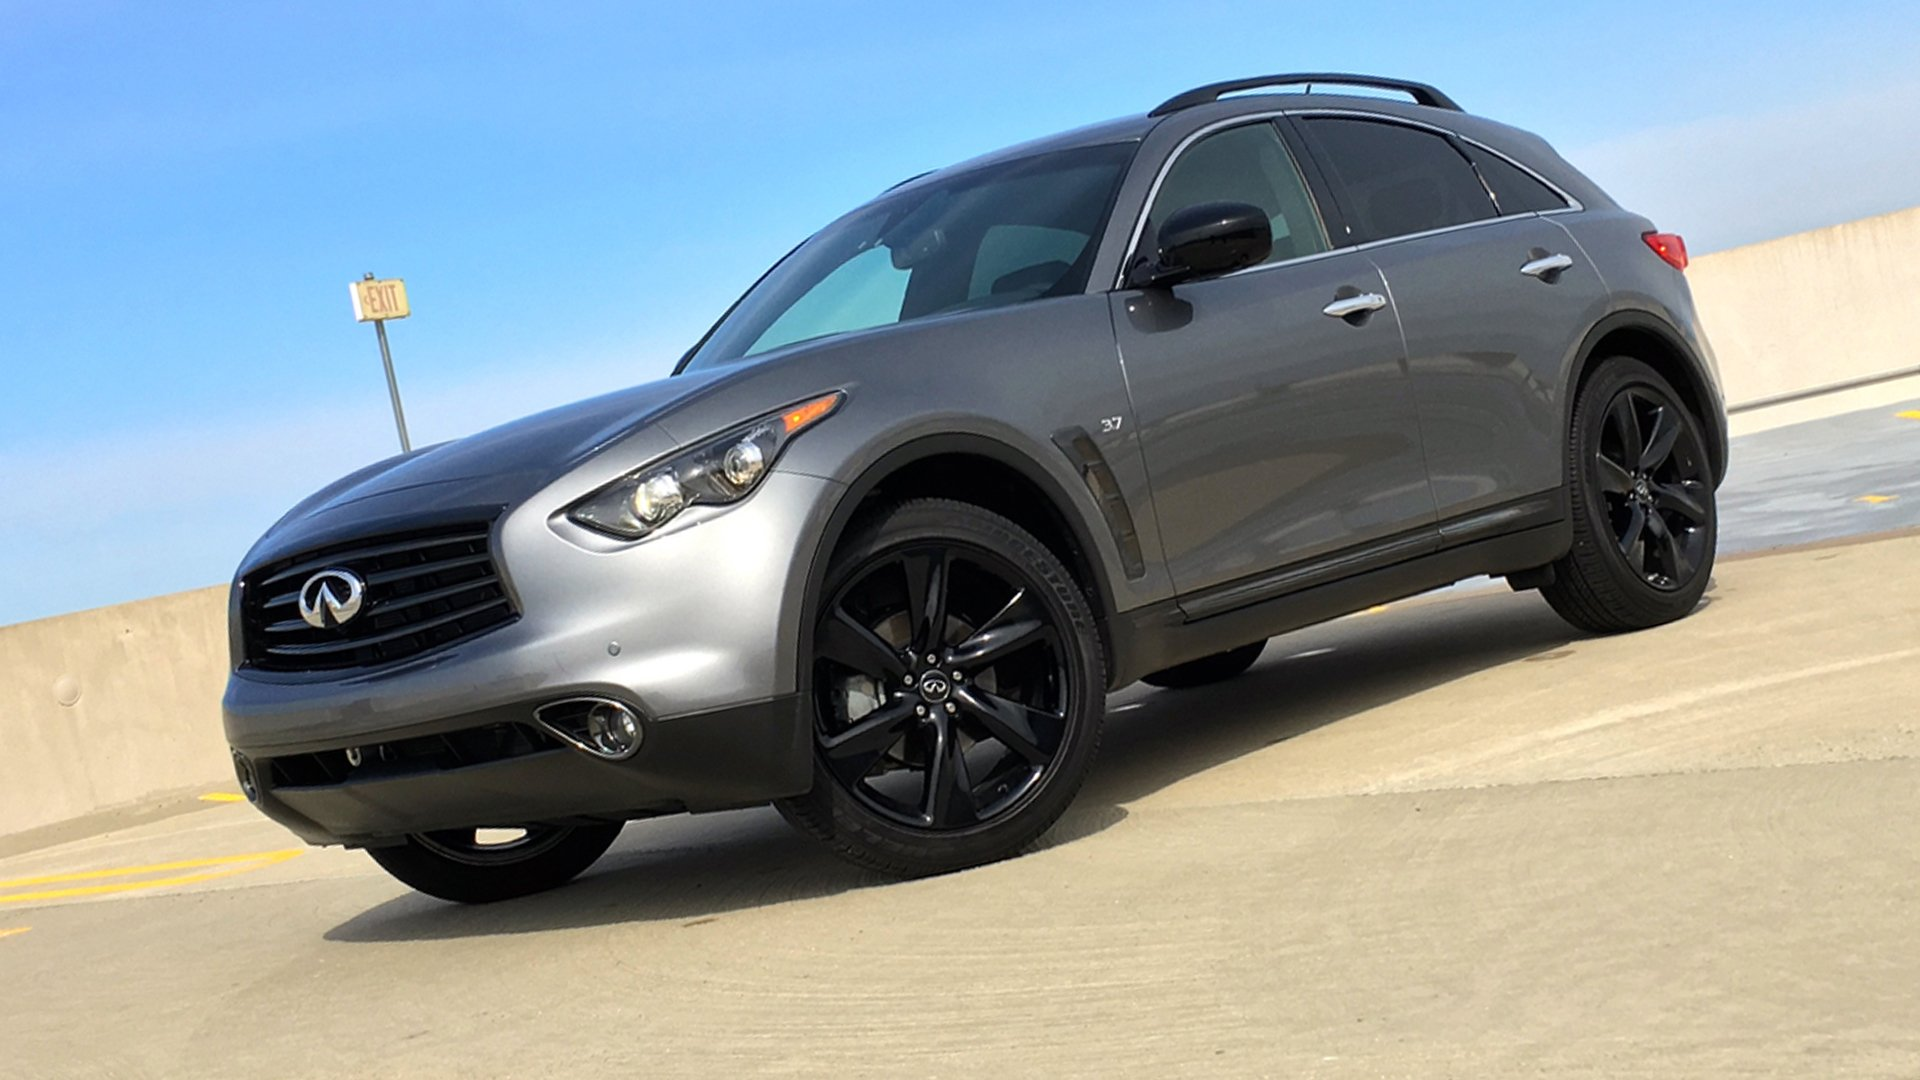 New 2019 Infiniti QX70 Wallpaper HD Desktop